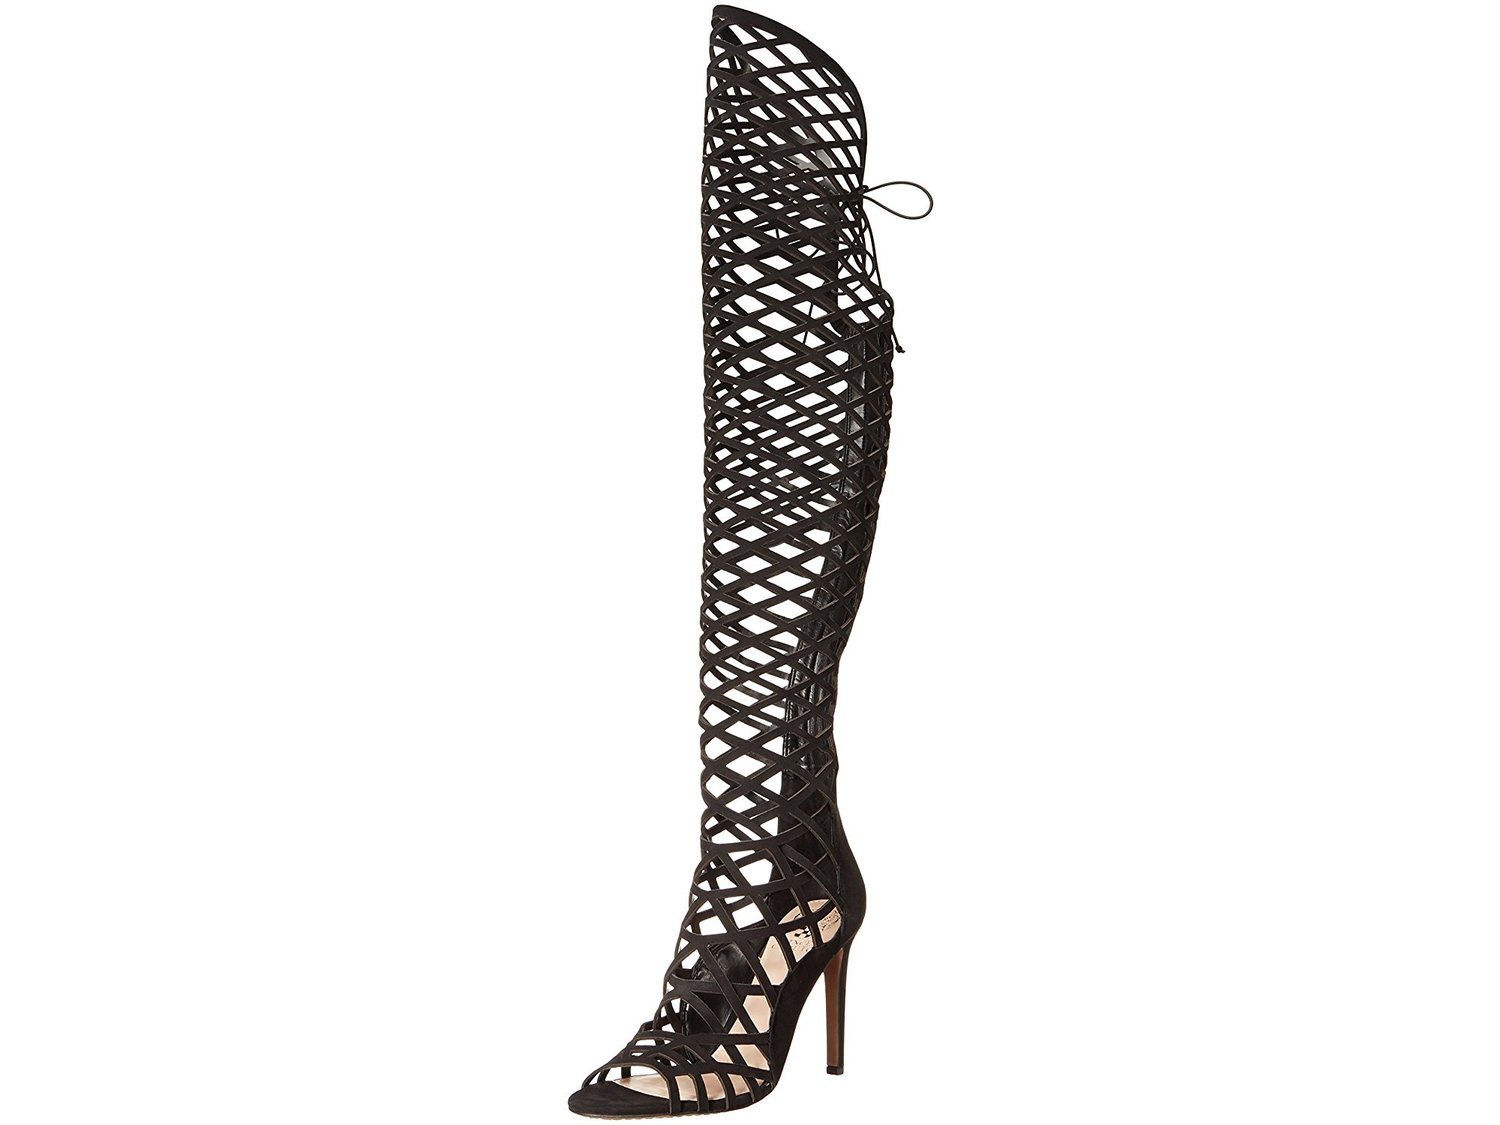 Vince Camuto Damenschuhe keliana keliana Damenschuhe Fabric Open Toe Over Knee Fashion 675051